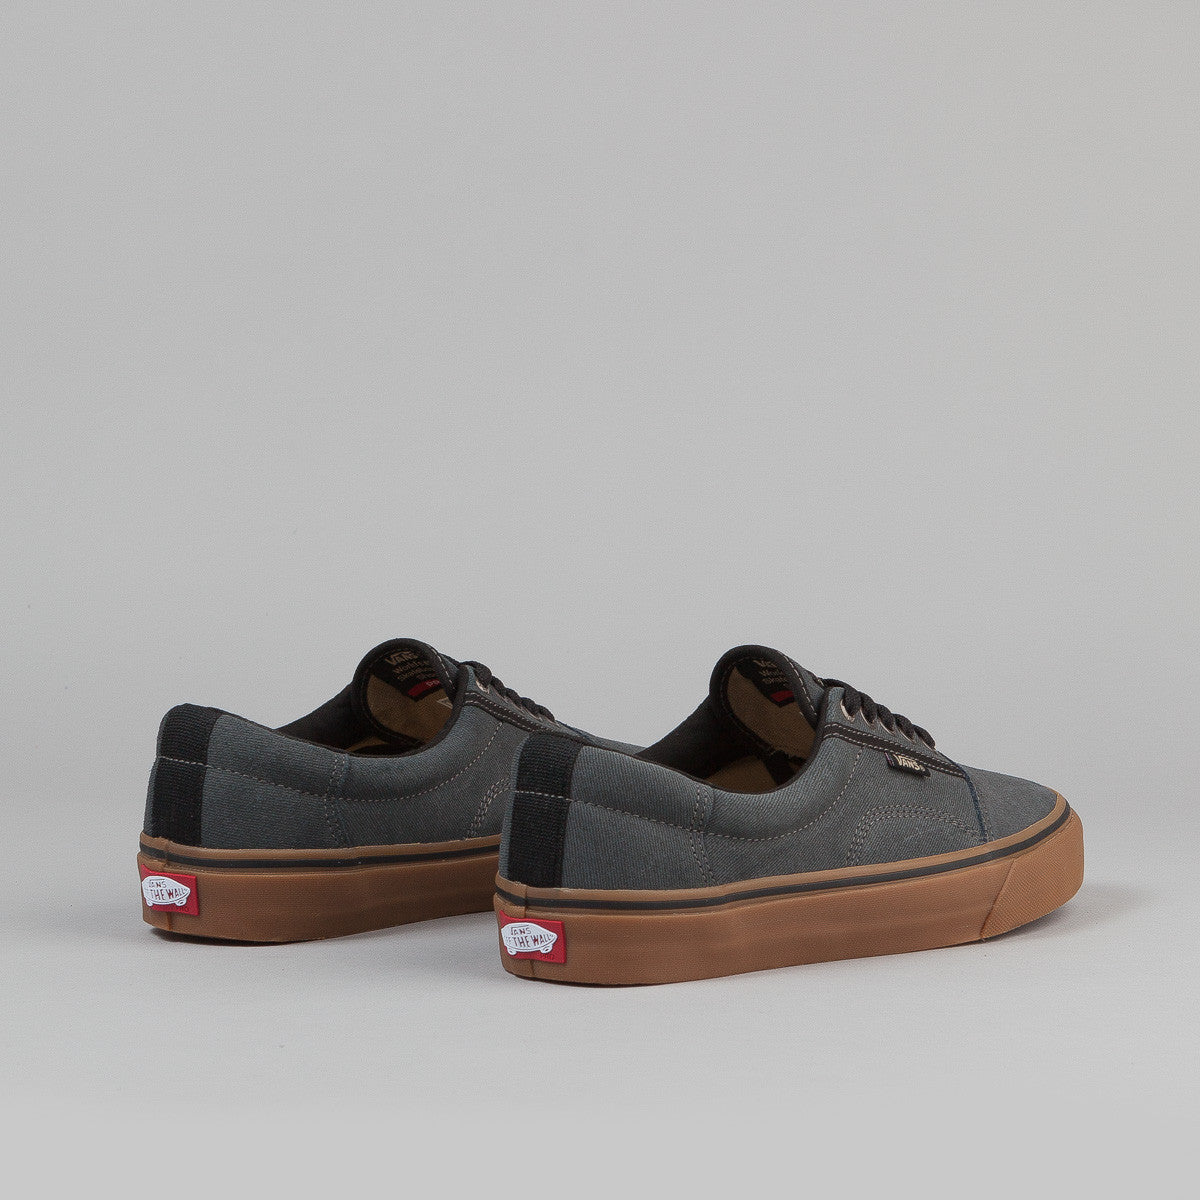 Vans Rowley Solos Shoes - (Xtuff) Black / Gum